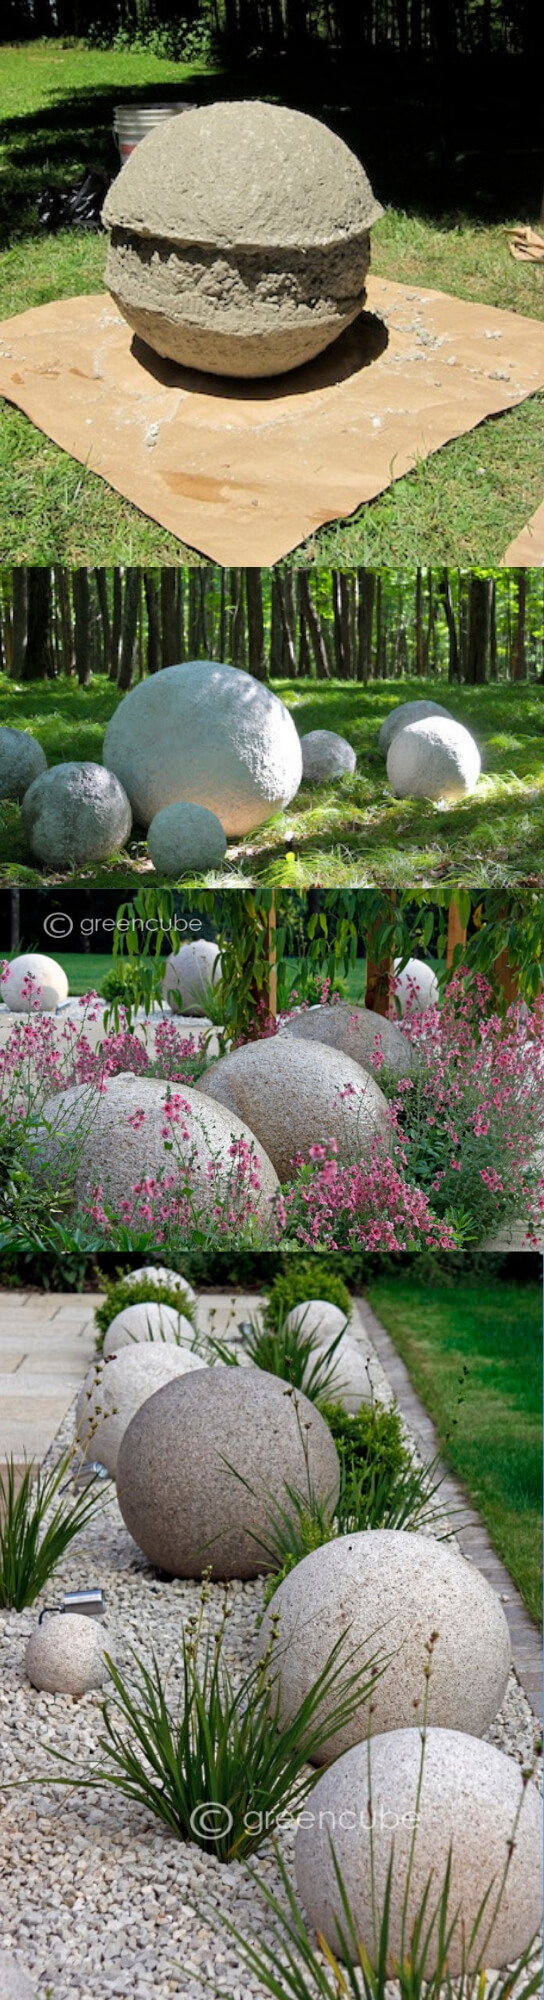 Giant concrete balls | Best DIY Garden Globe Ideas & Designs